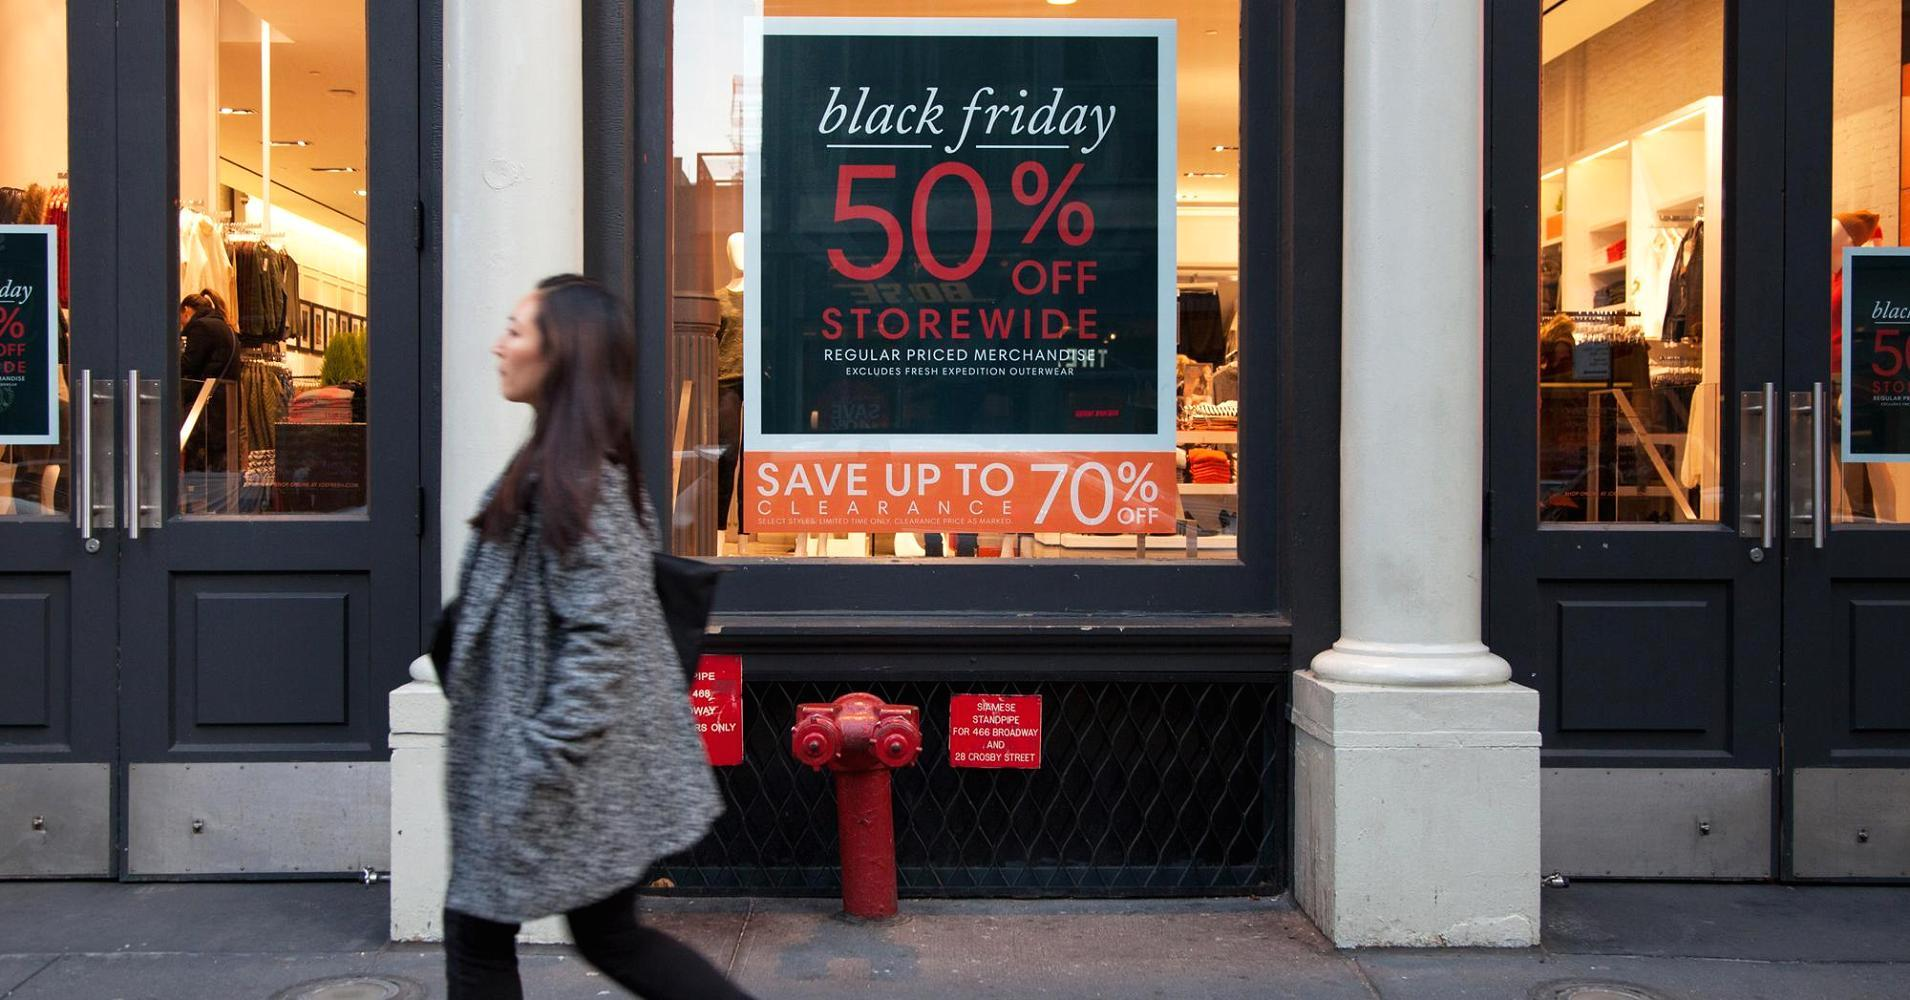 This is the biggest threat to retail sales growth